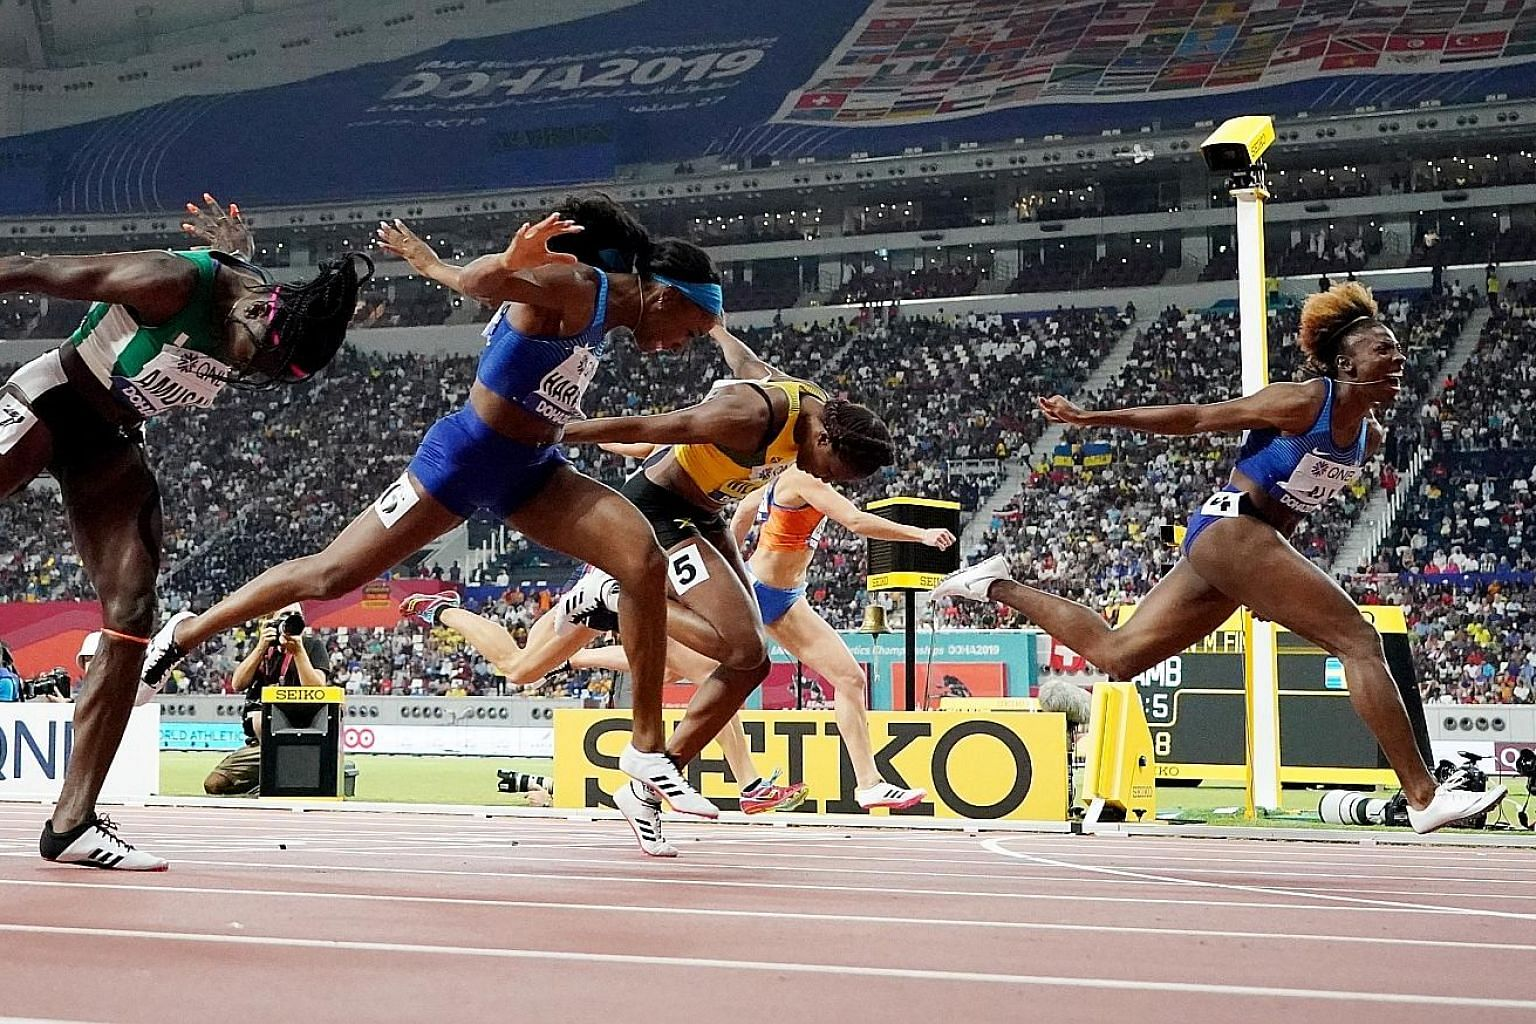 Nia Ali beating fellow American Kendra Harrison to the gold in the 100m hurdles at the World Athletics Championships in Doha, with Jamaica's Danielle Williams taking the bronze.